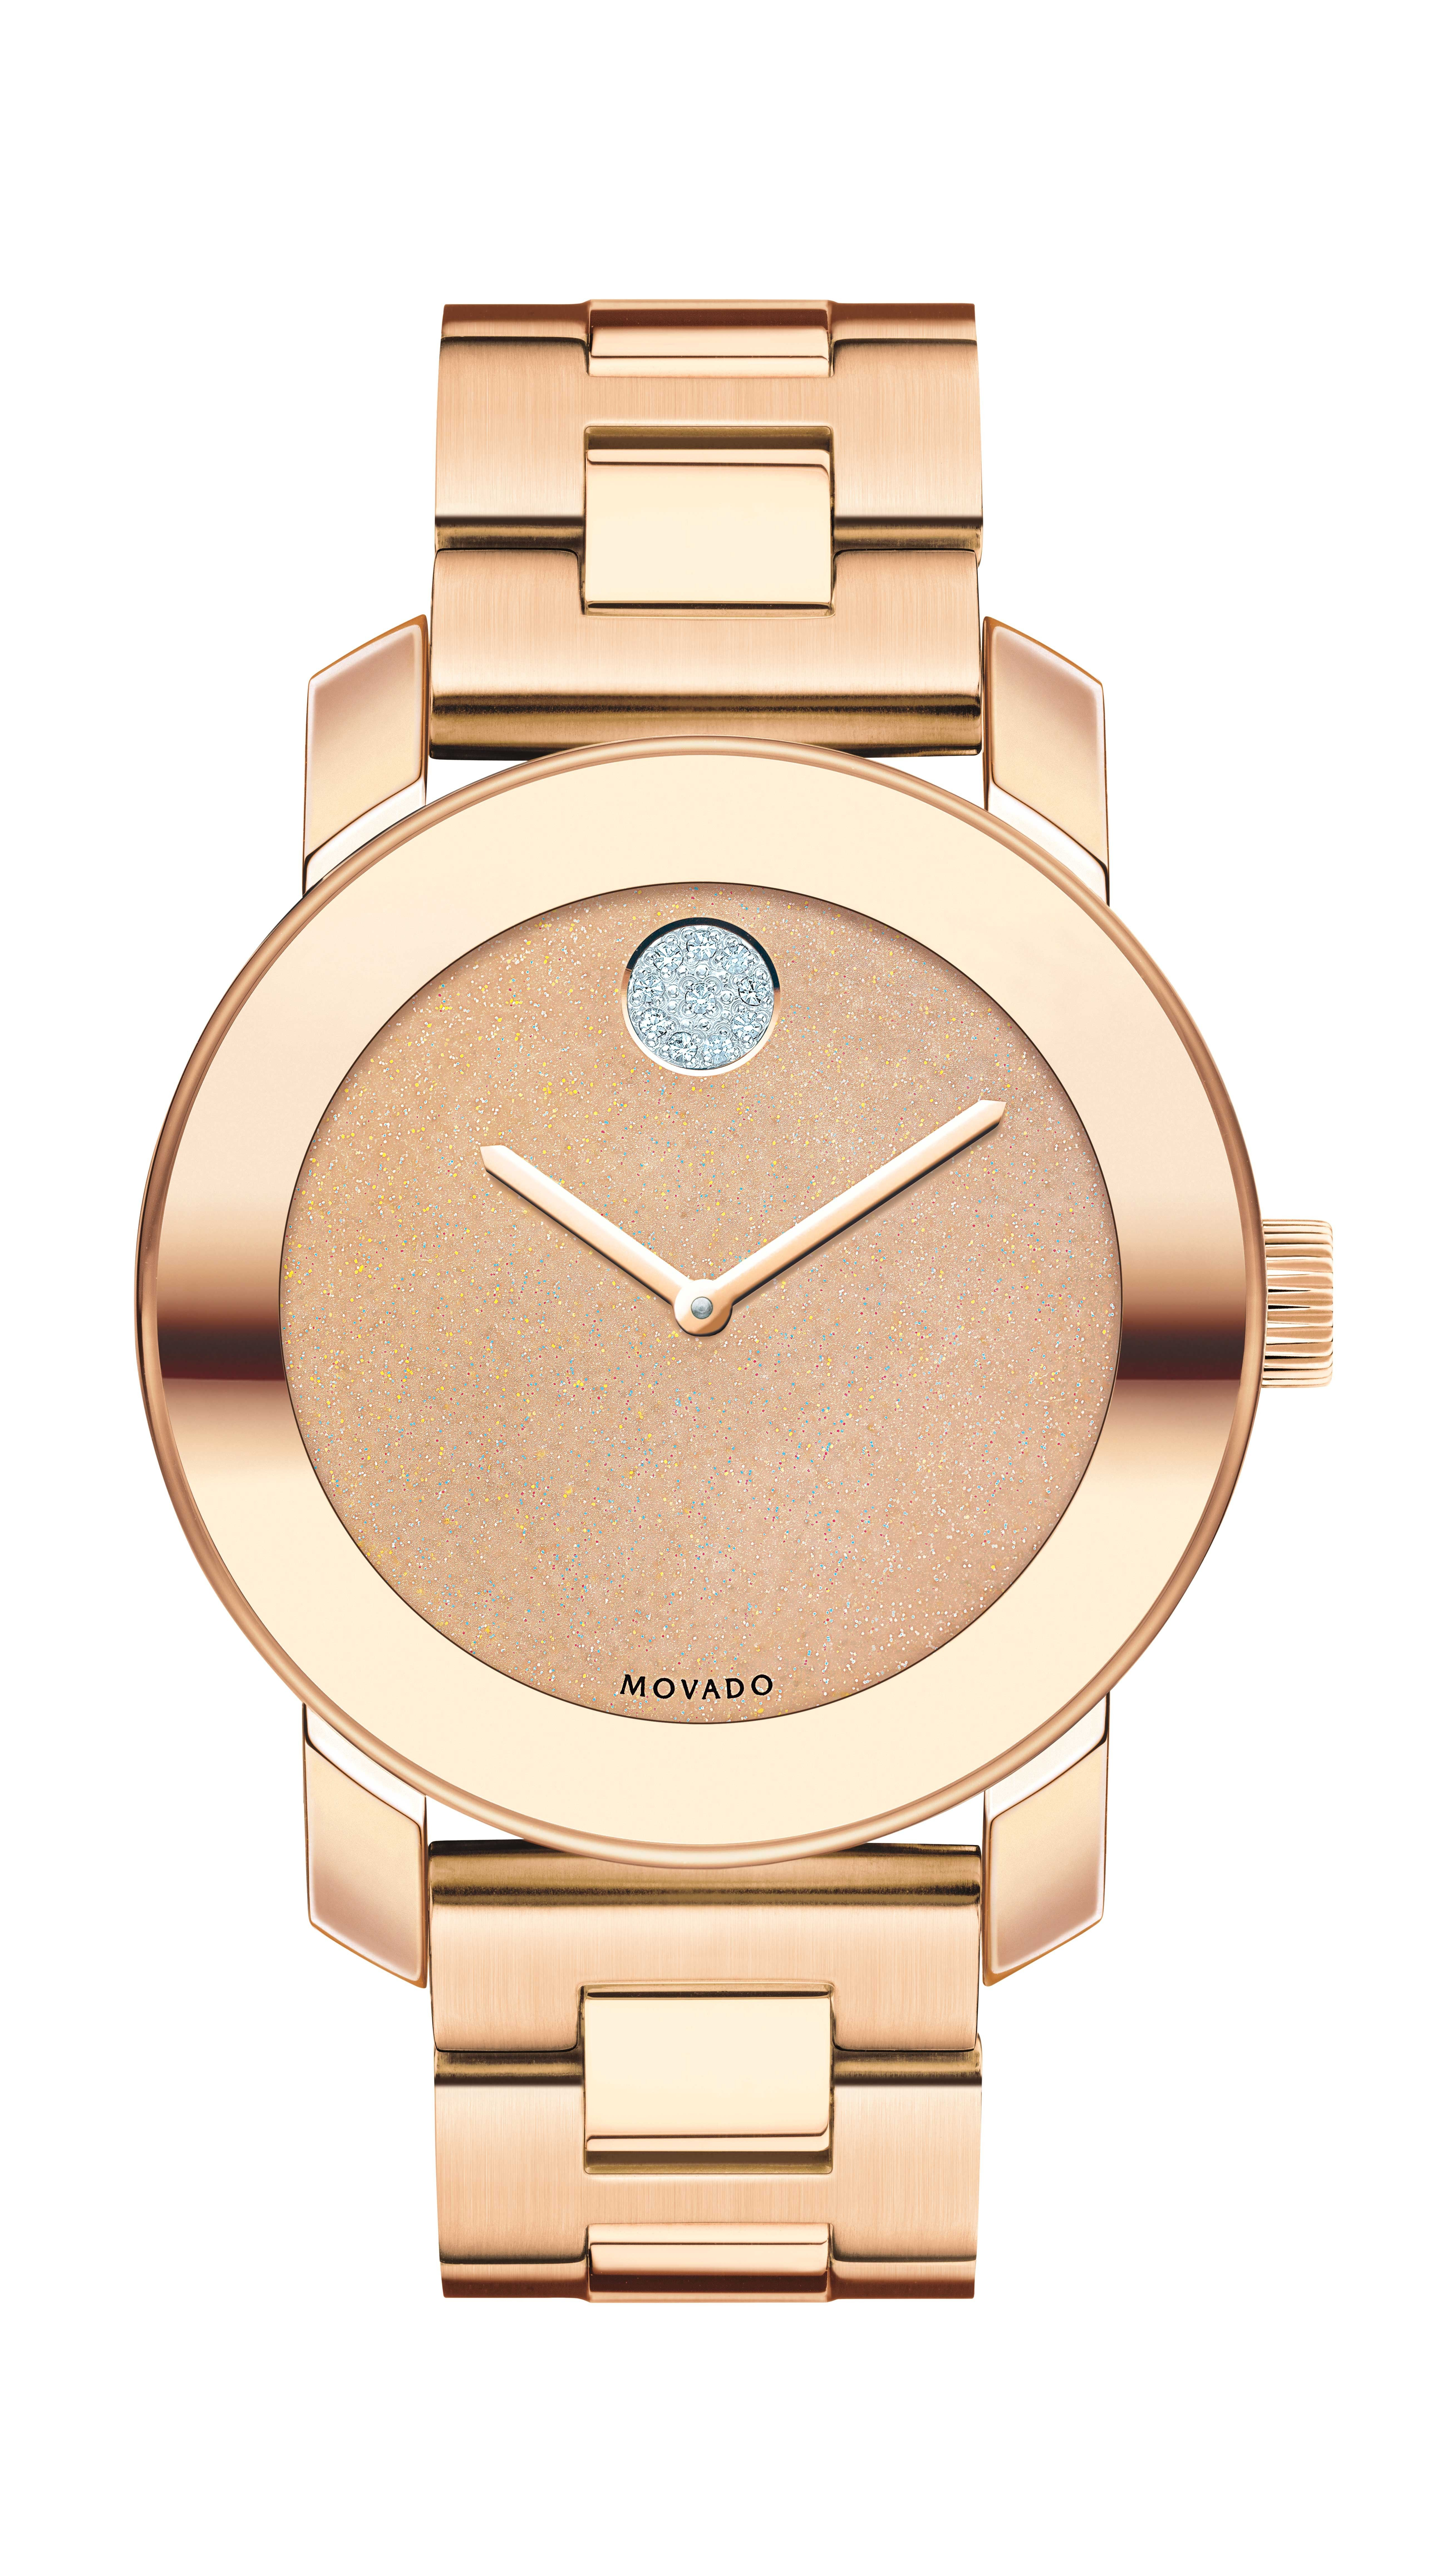 50fe3159c Movado Bold - Mid-size Movado BOLD watch, 36 mm rose gold ion-plated  stainless steel case with mirror-finish bezel, bronze glitter dial with  clear ...